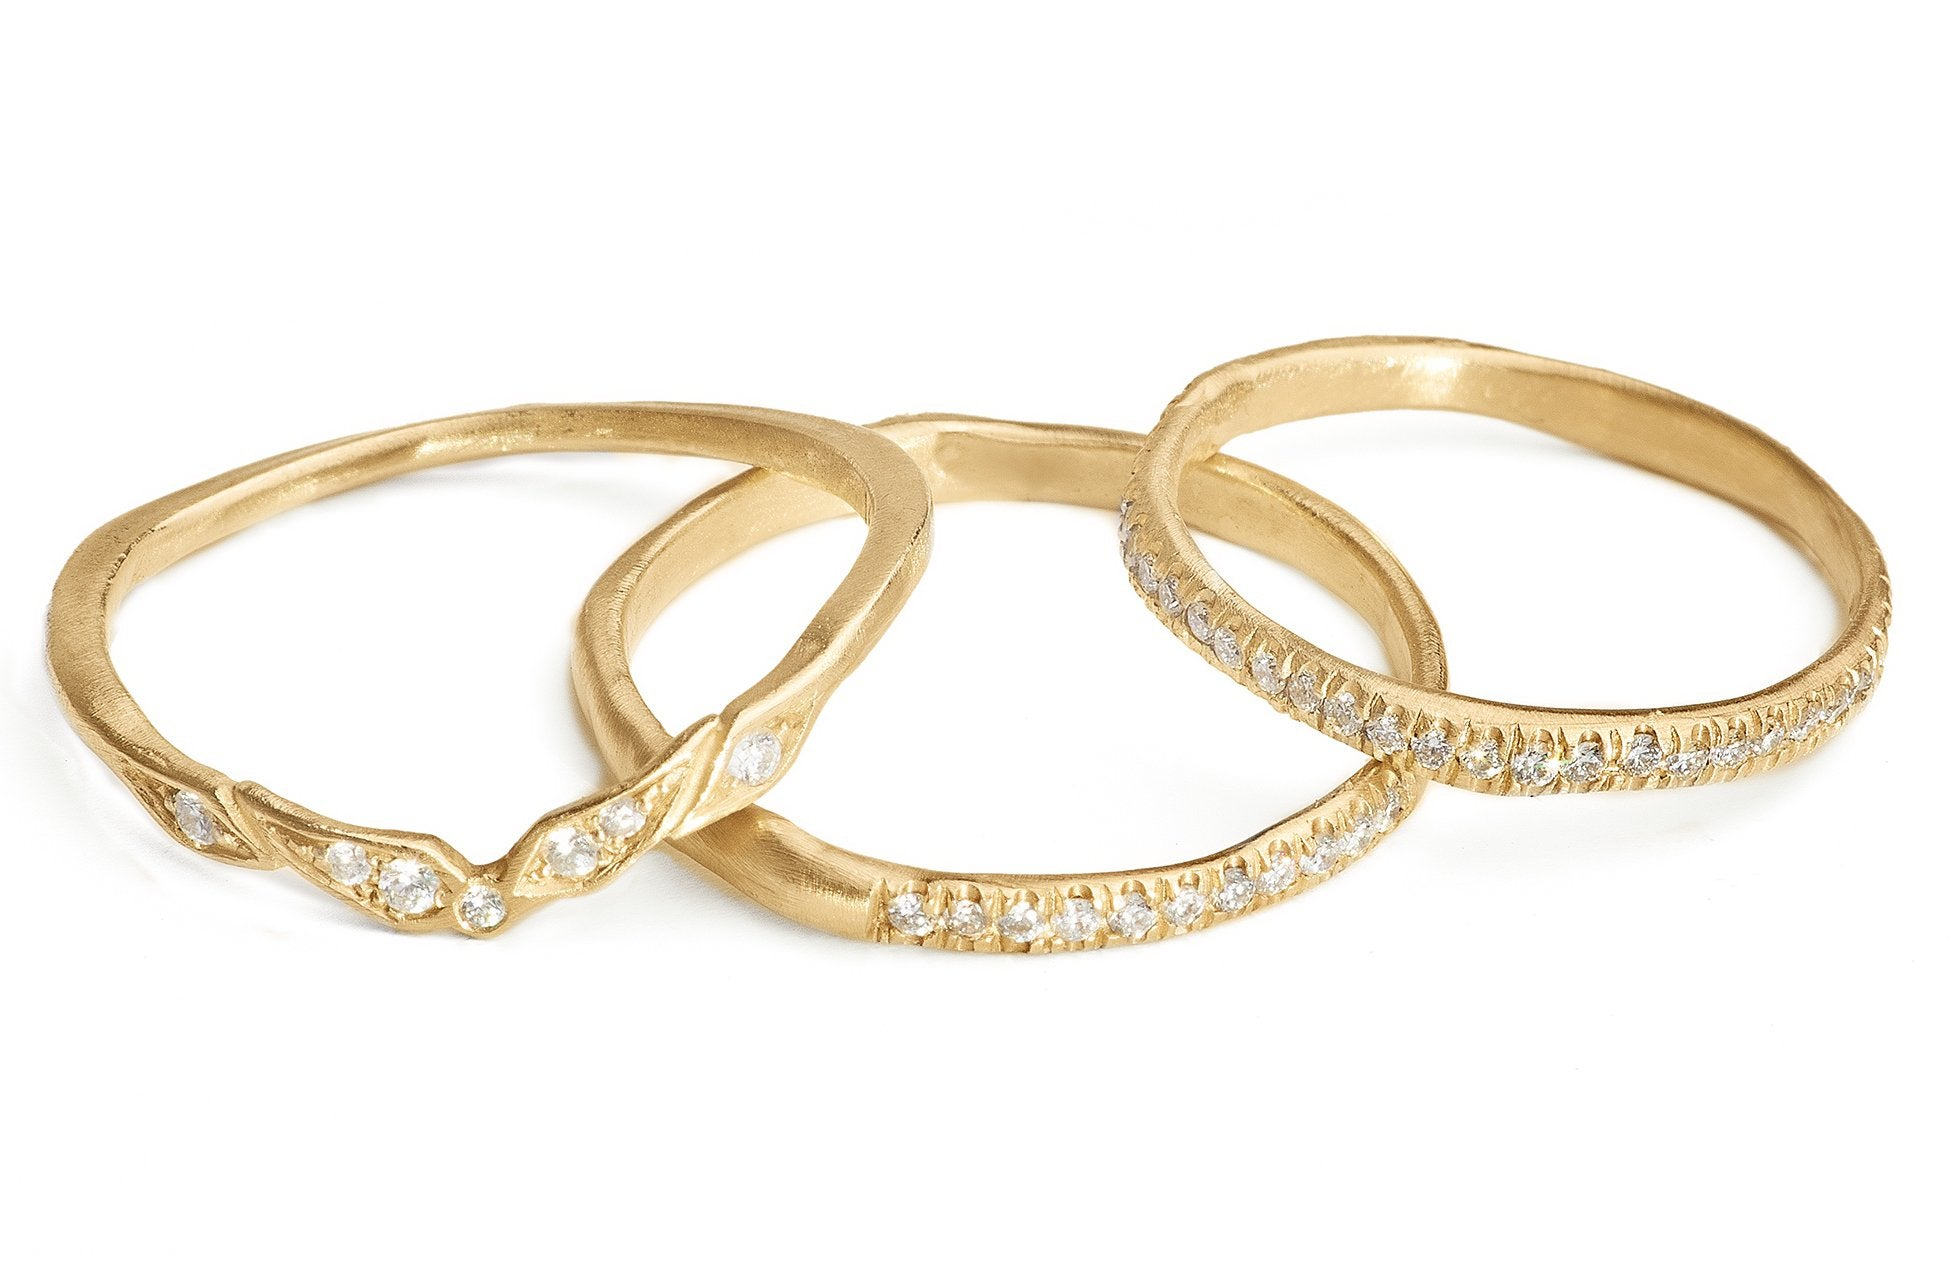 Pave diamond gold stacking rings and wedding bands